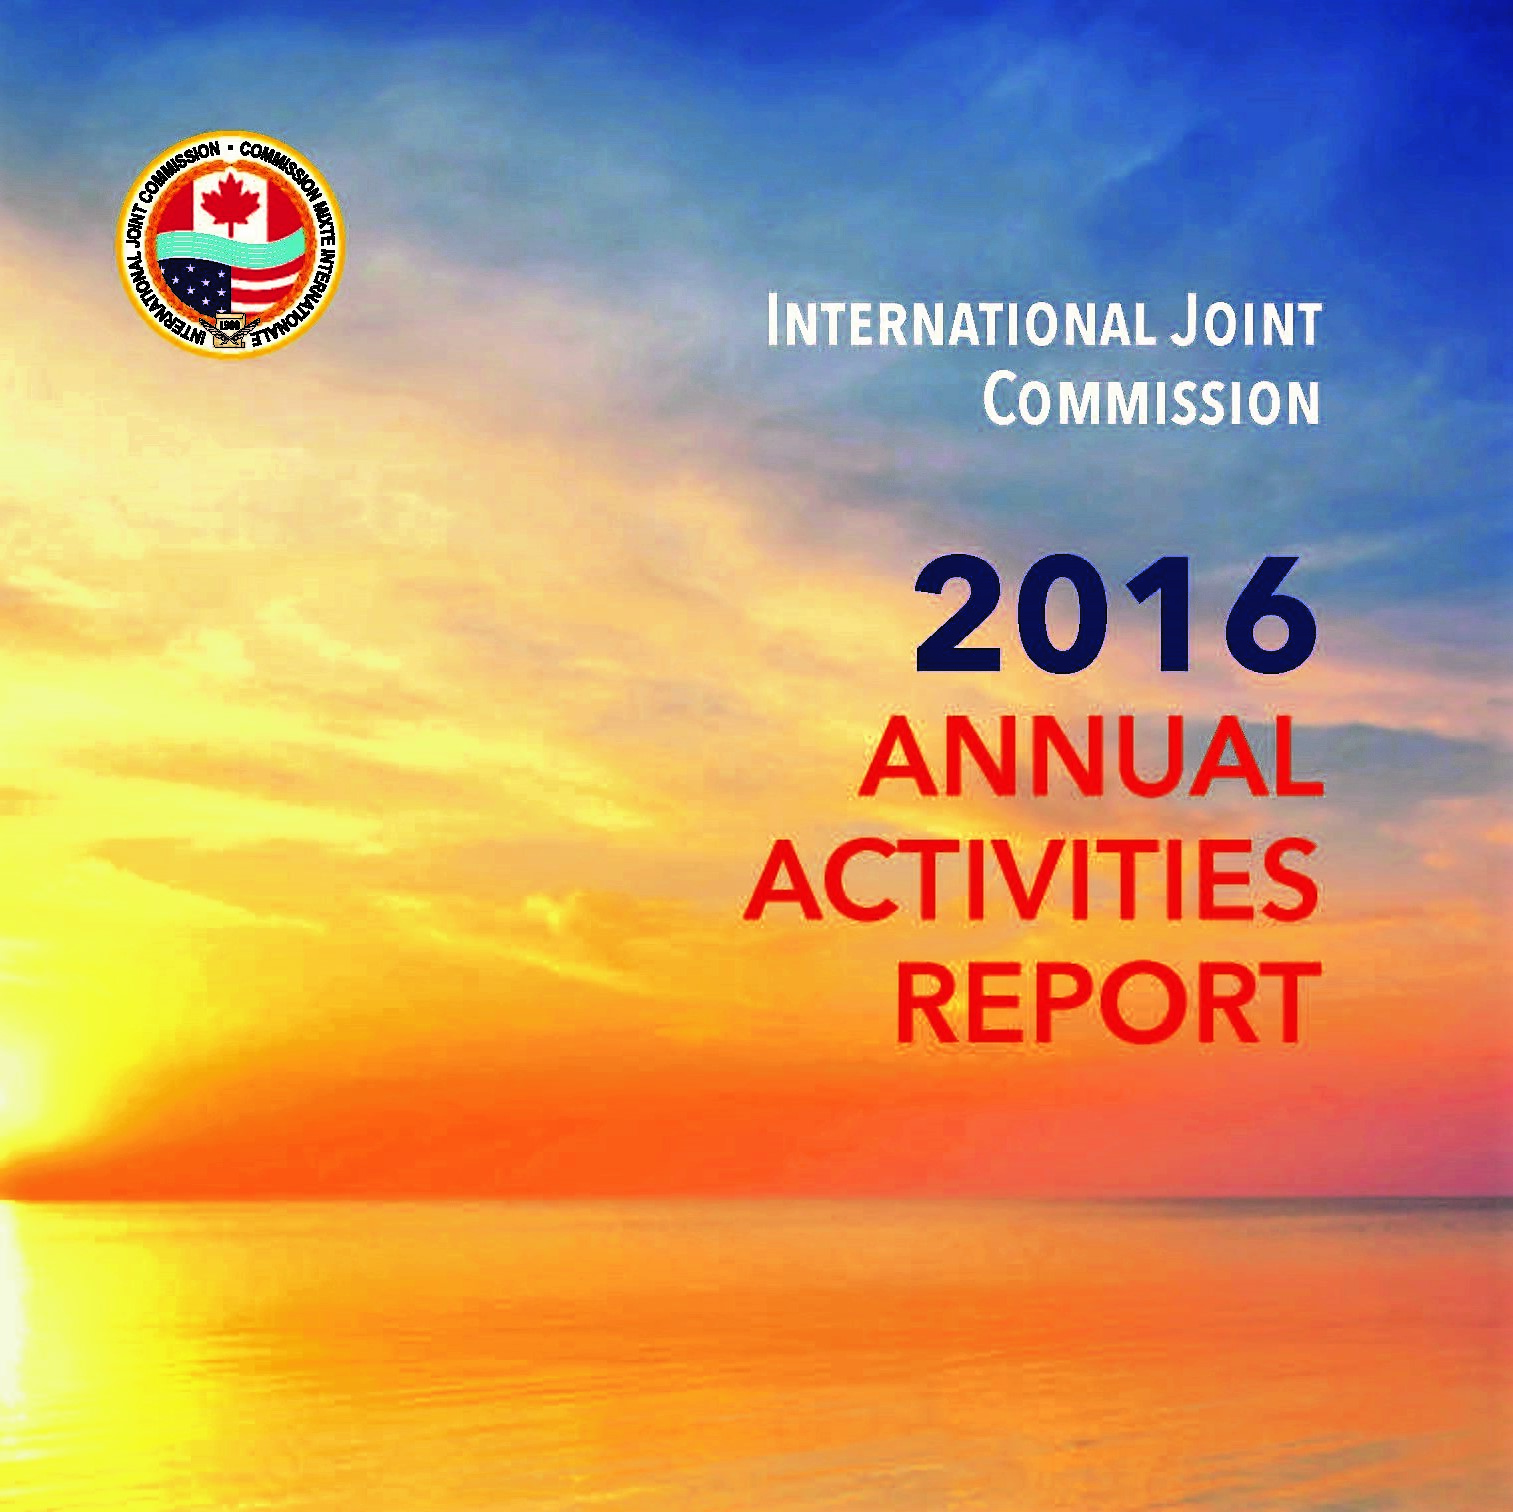 Flooding Studies, Regulation Plans, and the IJC Annual Activities Report